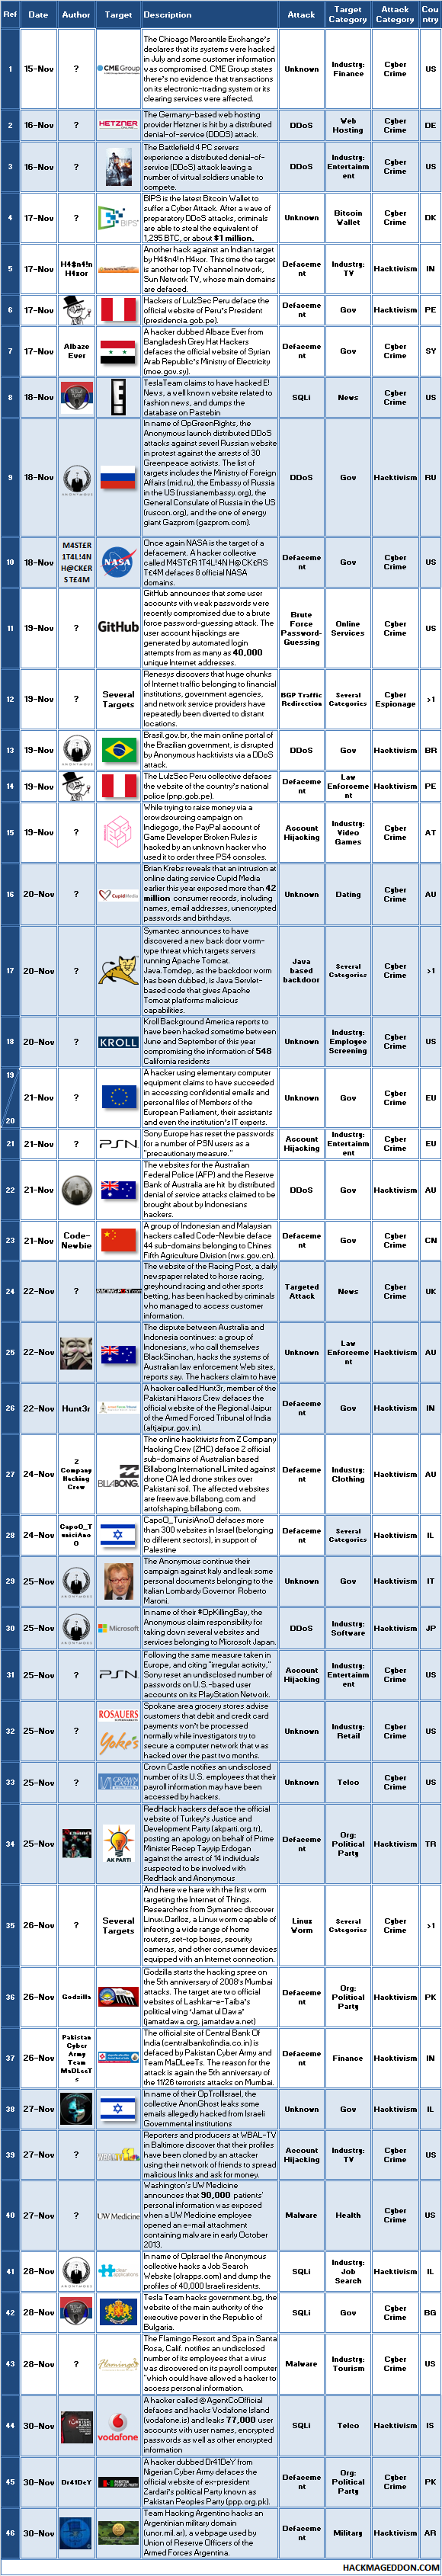 16-30 November 2013 Cyber Attacks Timeline